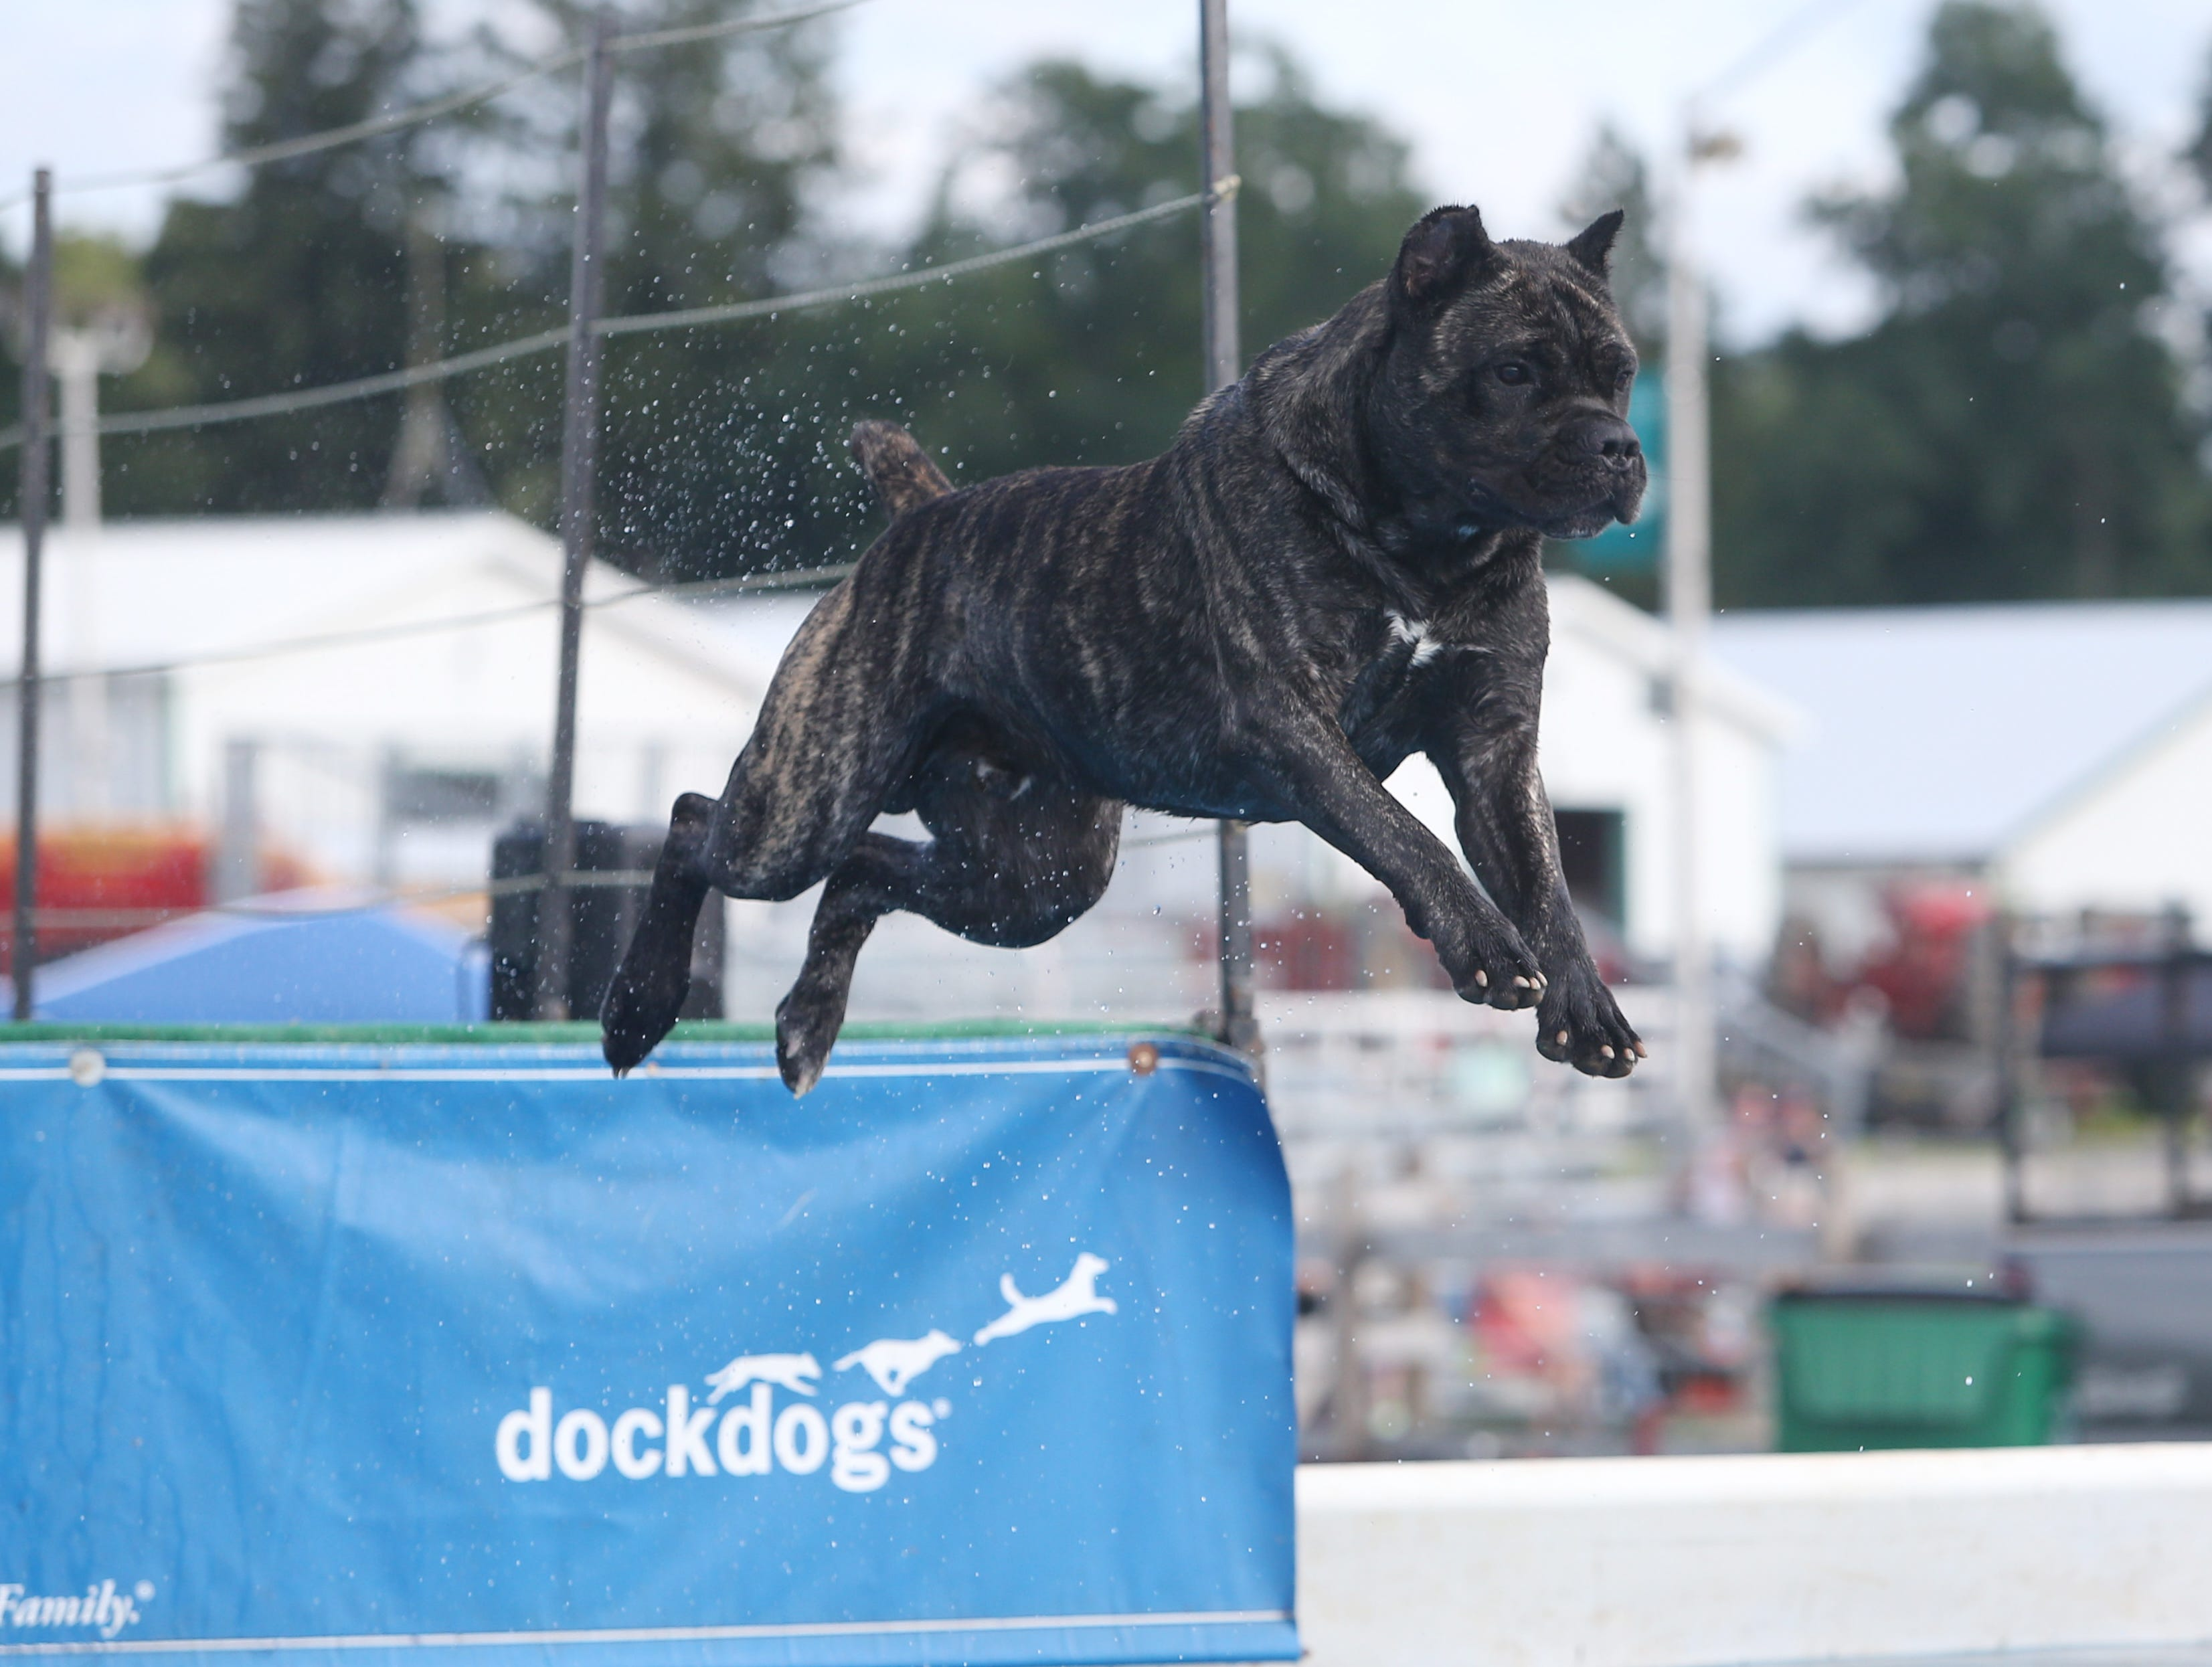 Ledoux makes a leap at Dock Dogs at the Dutchess County Fair on August 21, 2018.